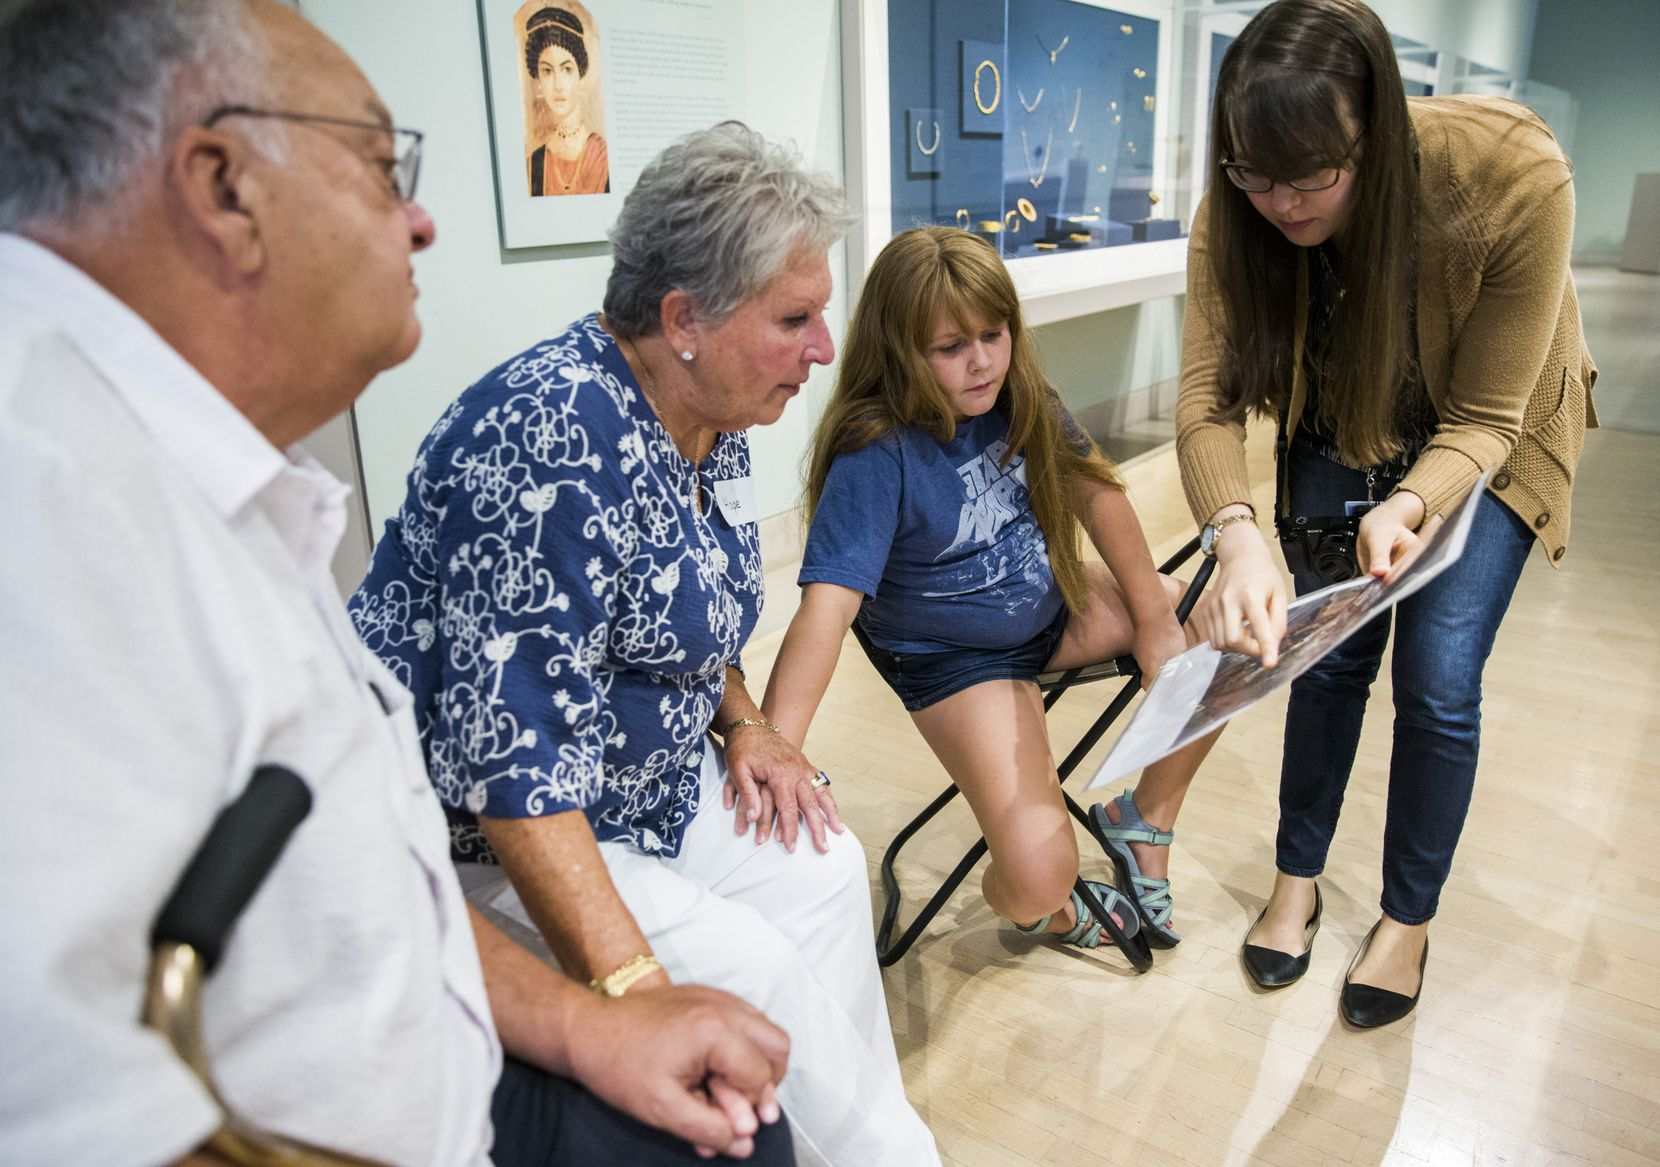 Alan and Hope Levine and their granddaughter Gretchen Jones, 9, looks at a photo of artwork from ancient Greece held by teaching specialist Jennifer Sheppard (right) as part of the Meaningful Moments Program for individuals with early stages of dementia at the Dallas Museum of Art.